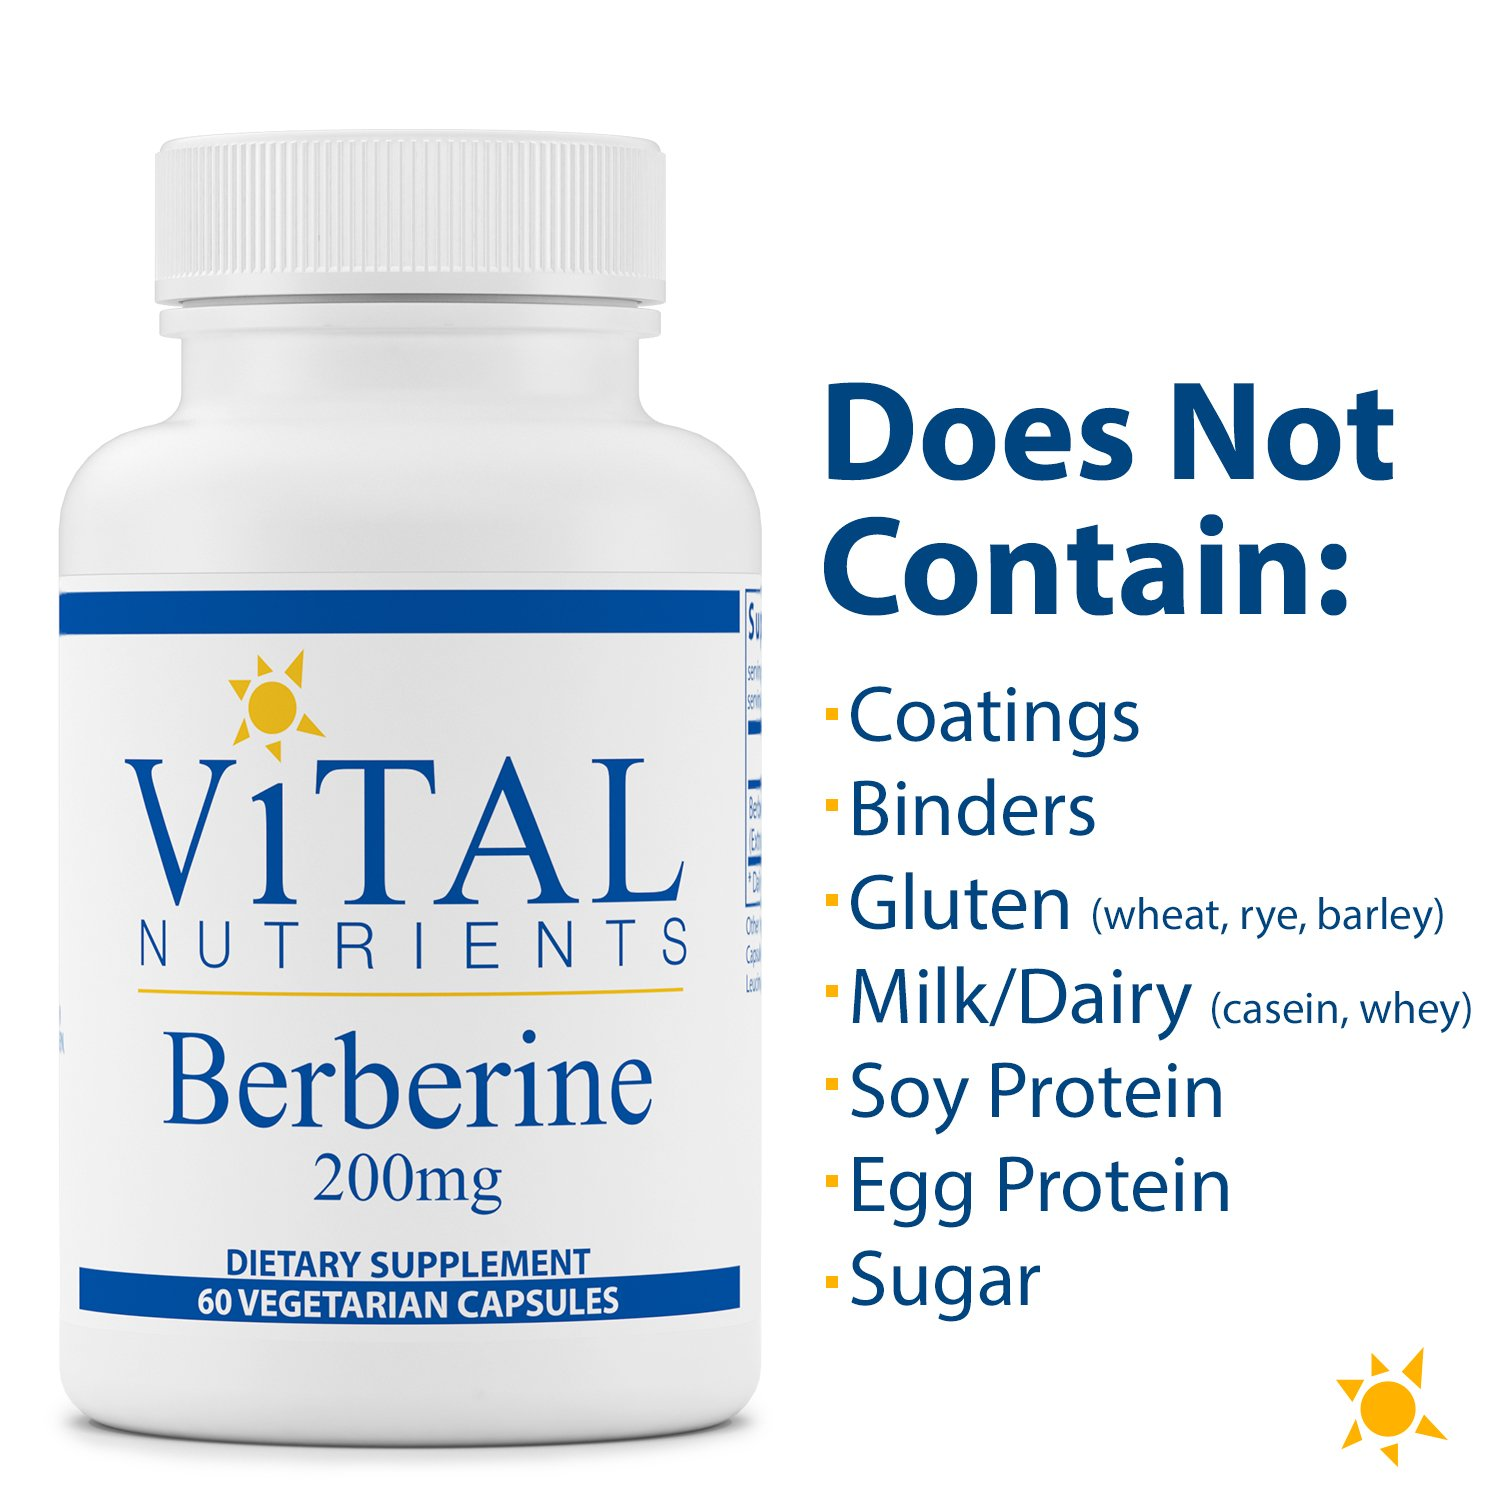 Vital Nutrients - Berberine 200 mg - Supports Regular and Normal Bowel Function - 60 Capsules by Vital Nutrients (Image #5)